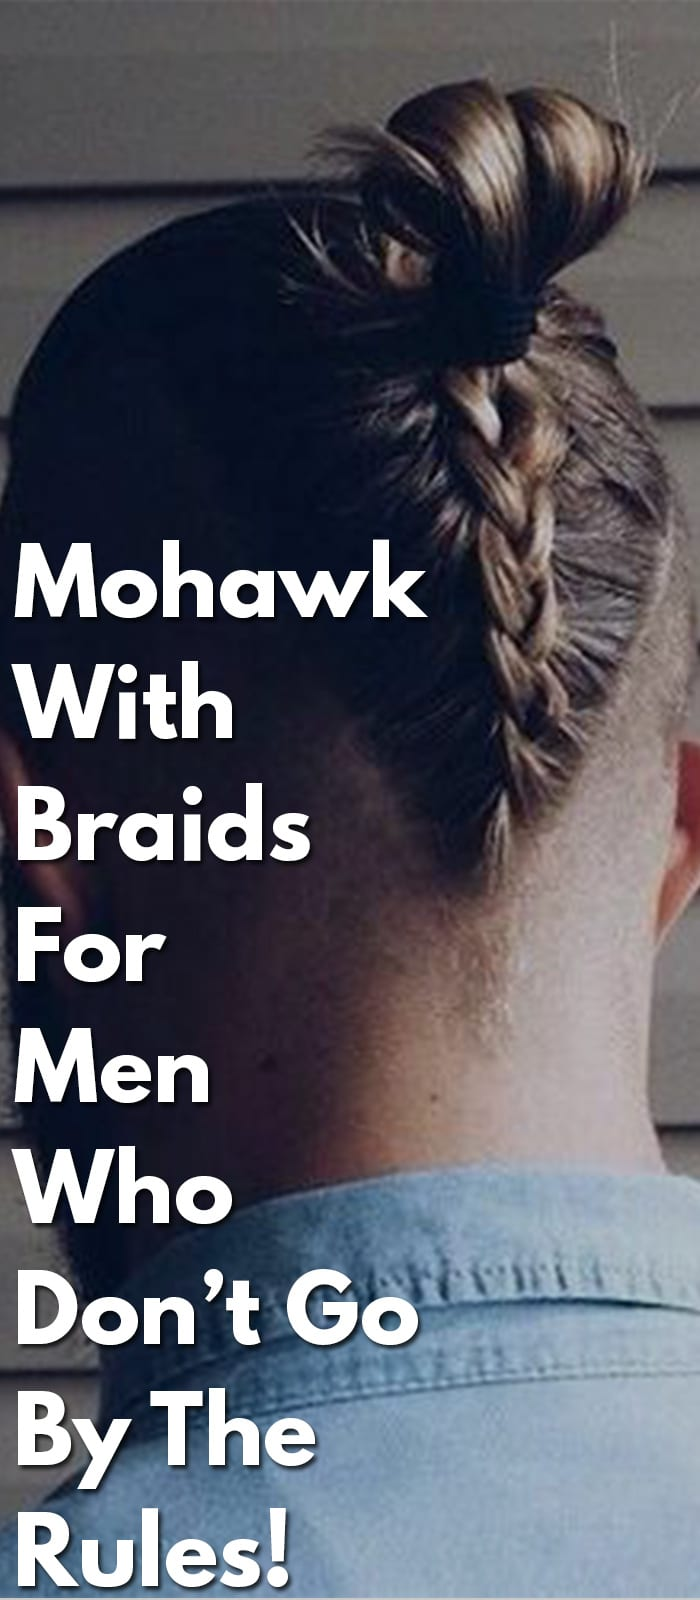 Mohawk-With-Braids-For-Men-Who-Don't-Go-By-The-Rules!..